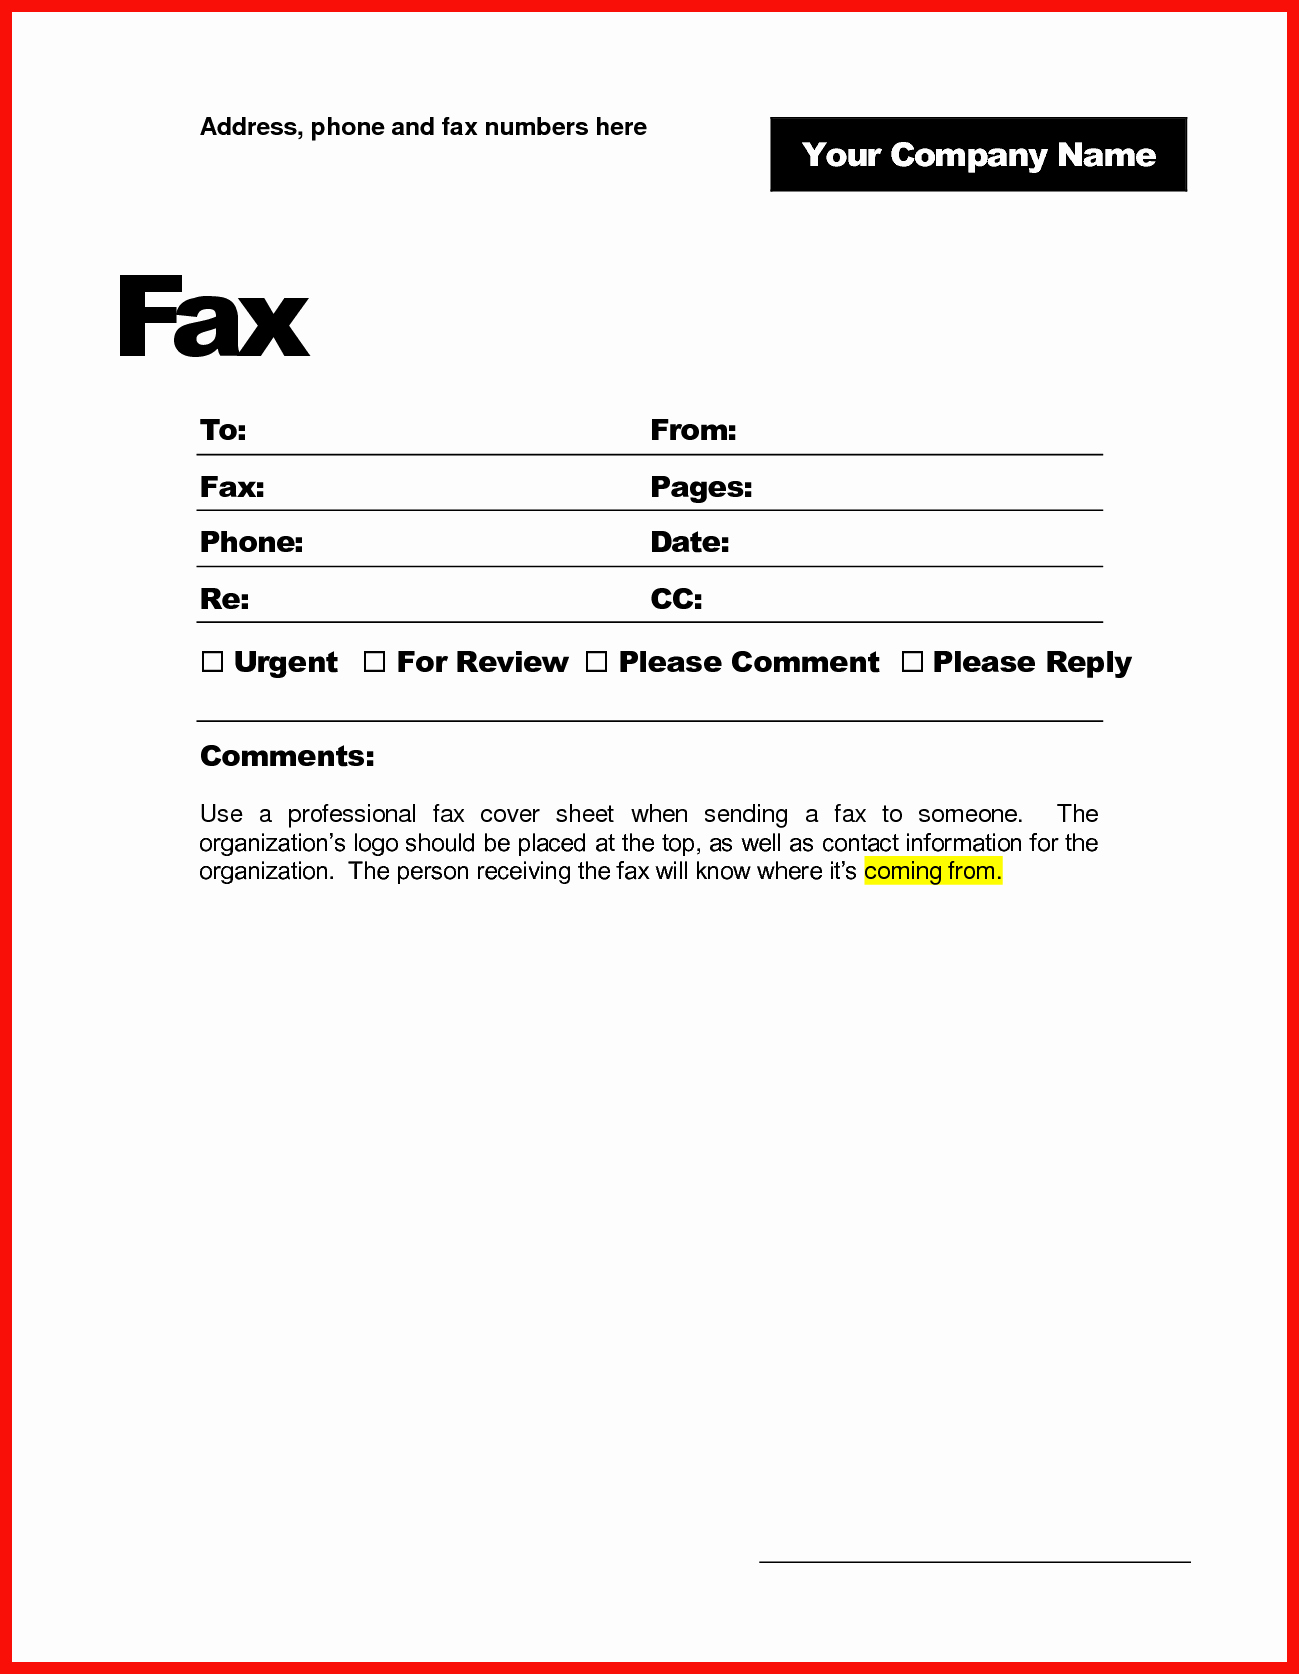 Business Fax Cover Sheet Template Lovely Printable Fax Cover Sheet